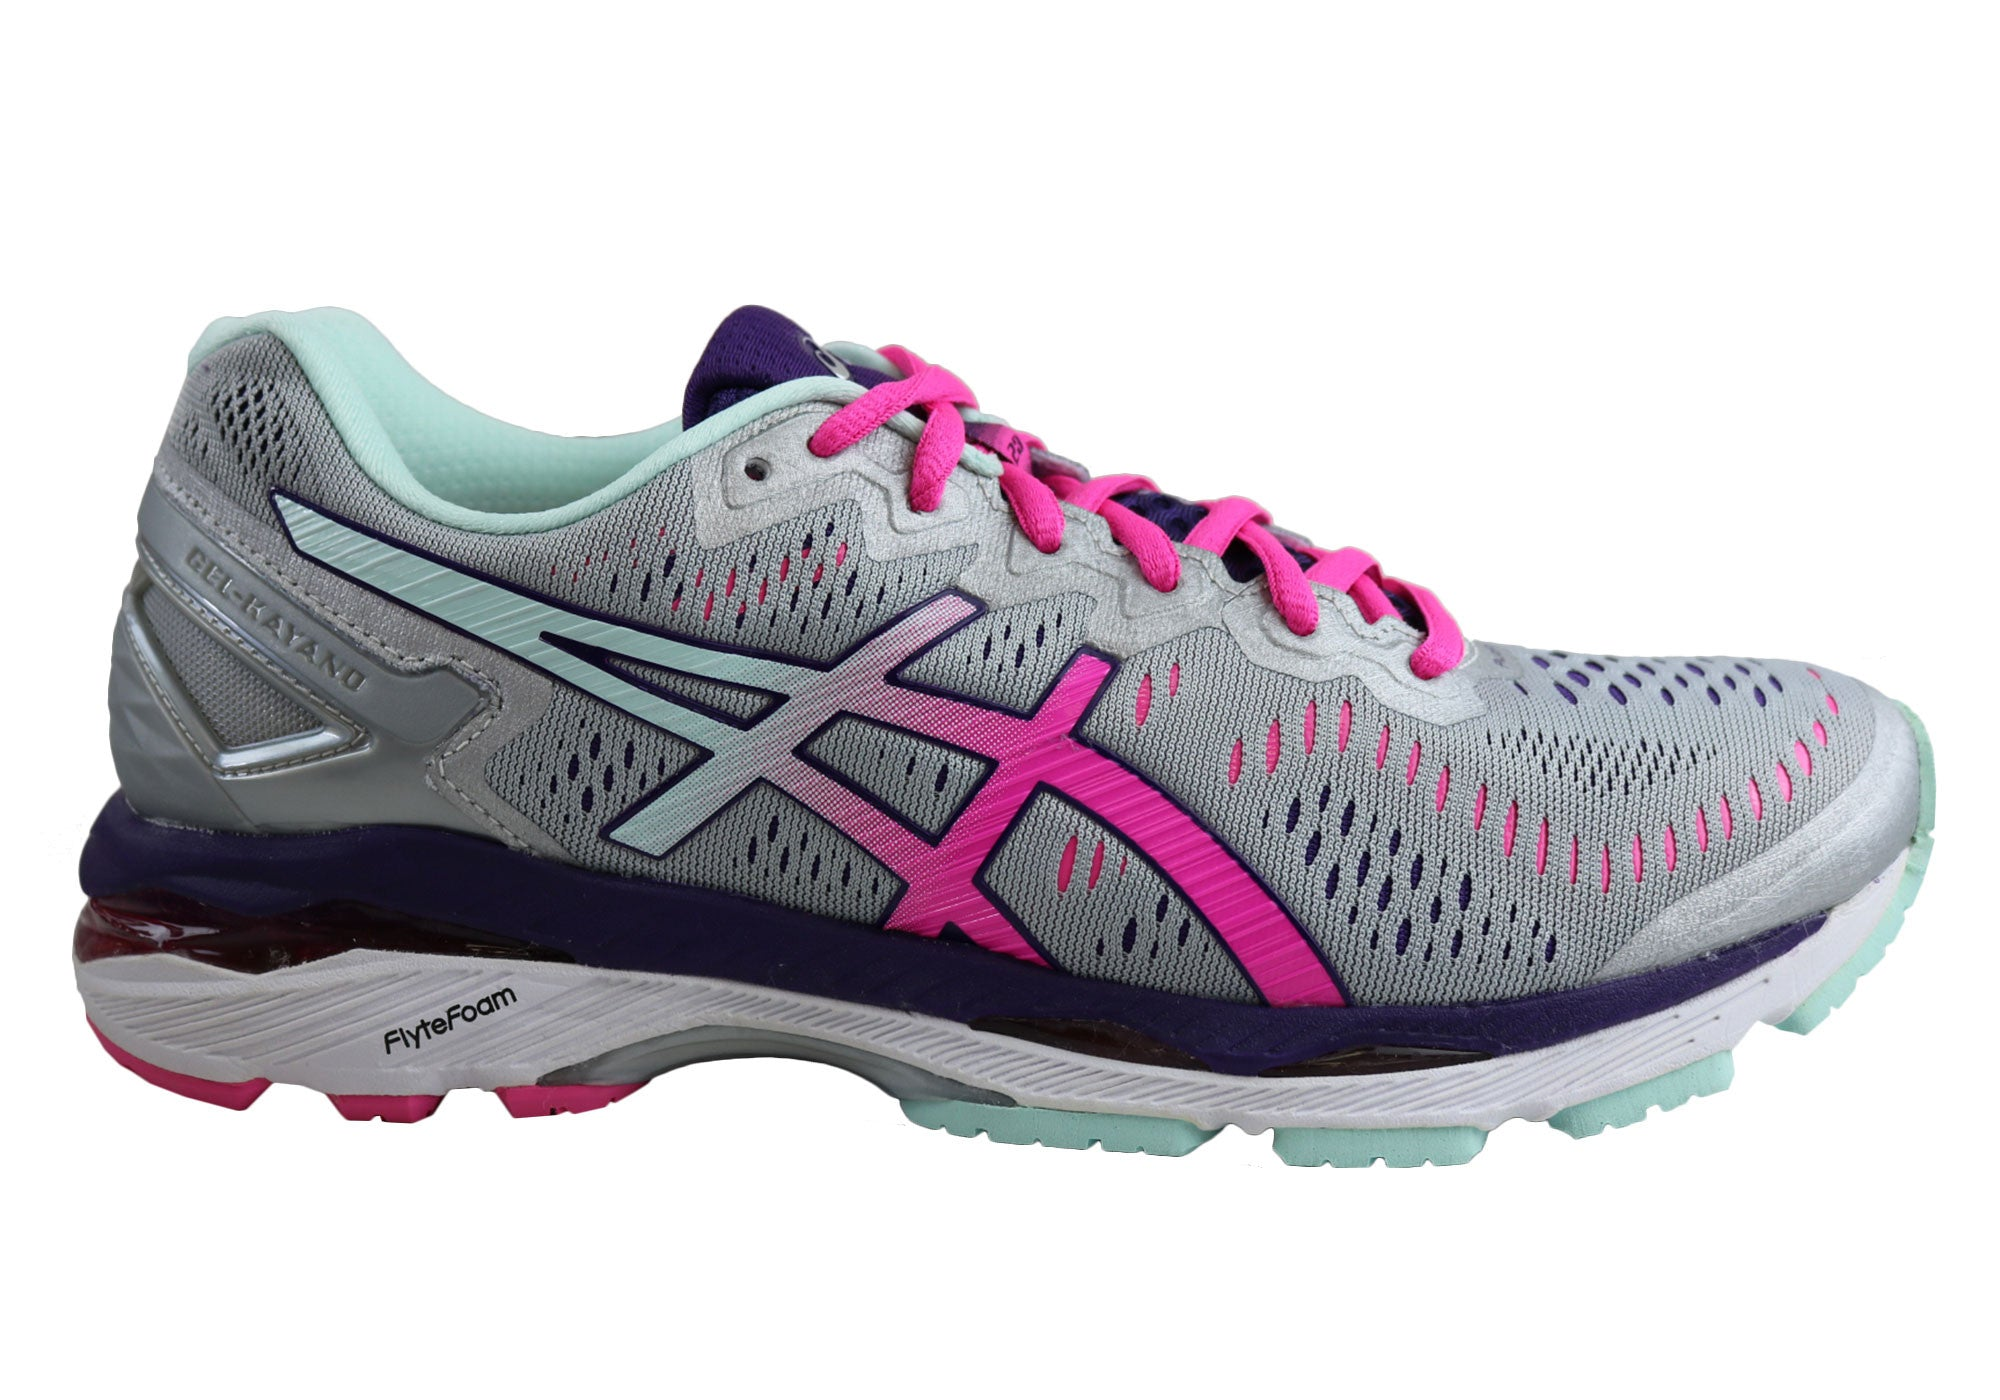 NEW ASICS GEL KAYANO 23 WOMENS PREMIUM CUSHIONED RUNNING SPORT SHOES ... 0178ca6b5412